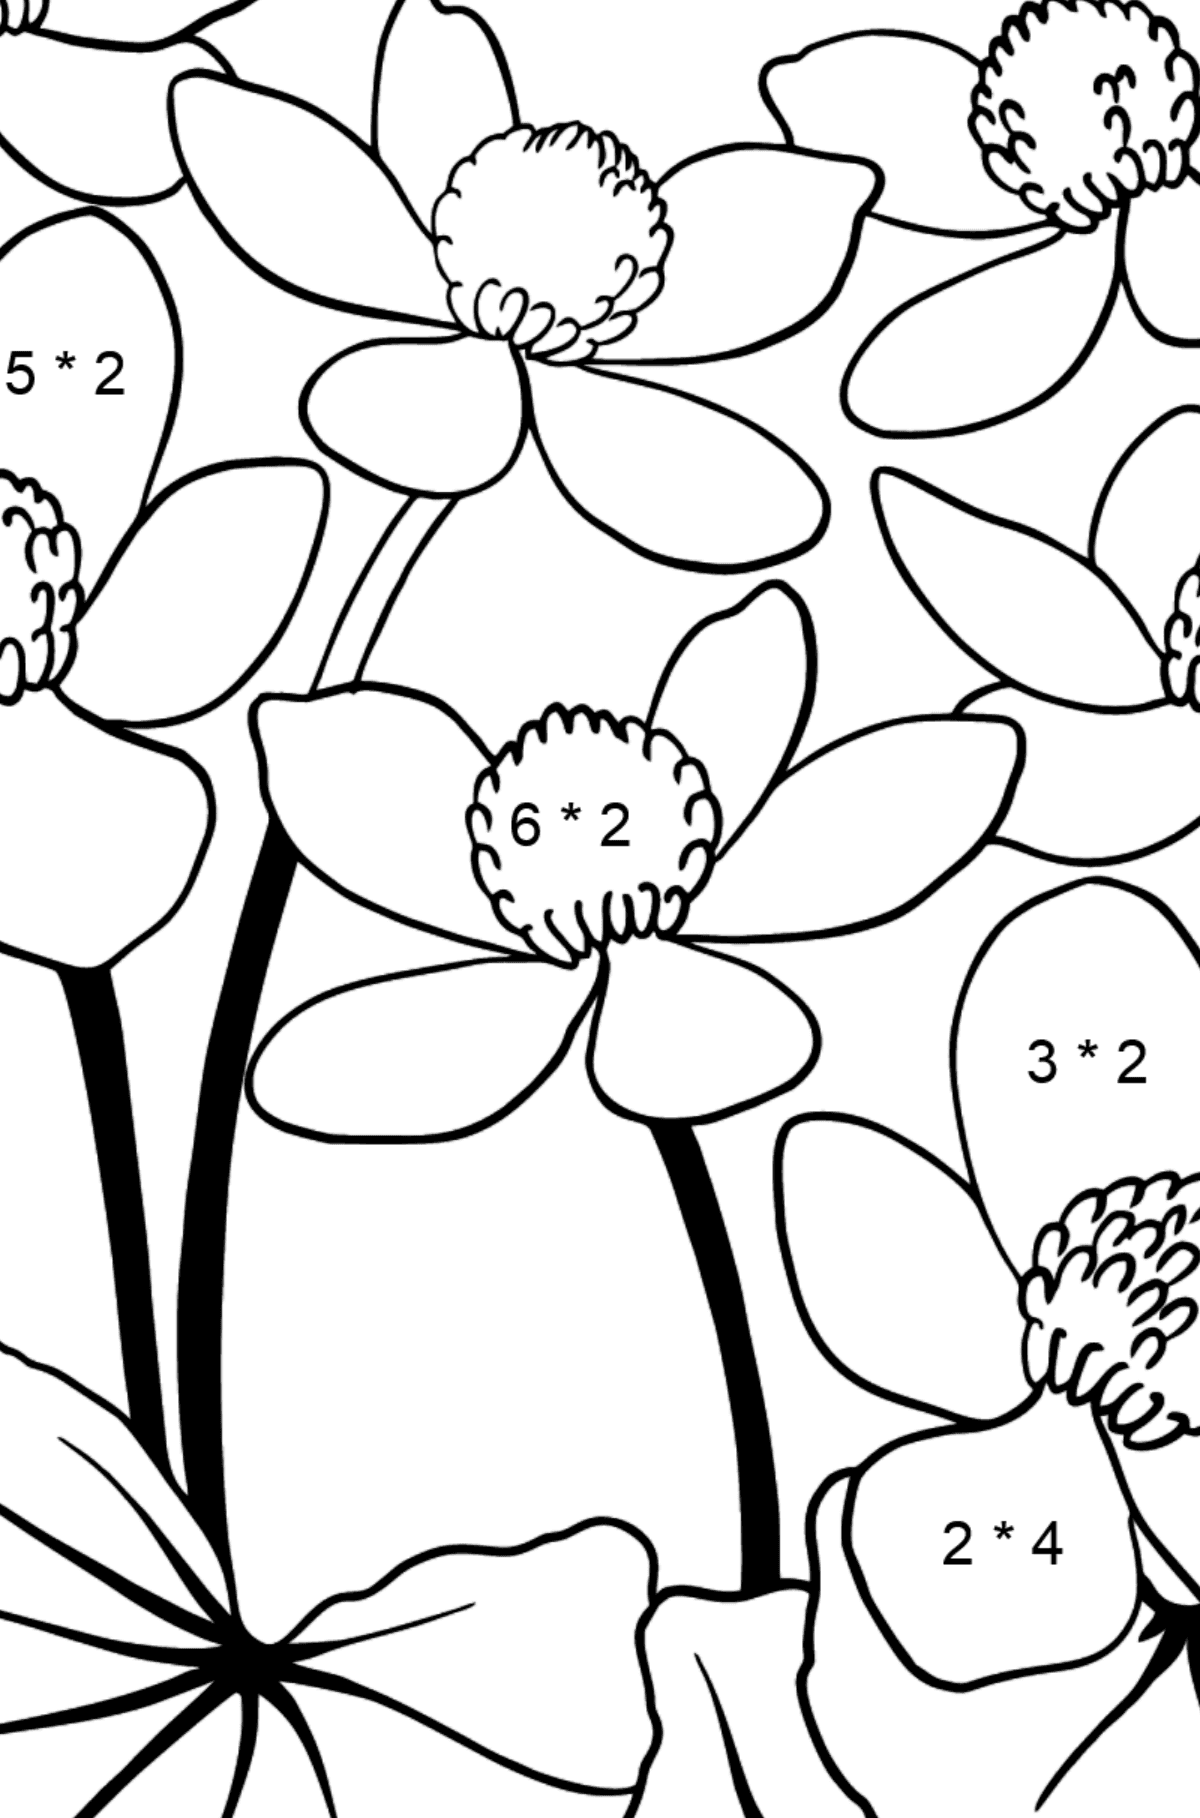 Flower Coloring Page - A Yellow and Red Marsh Marigold - Math Coloring - Multiplication for Kids